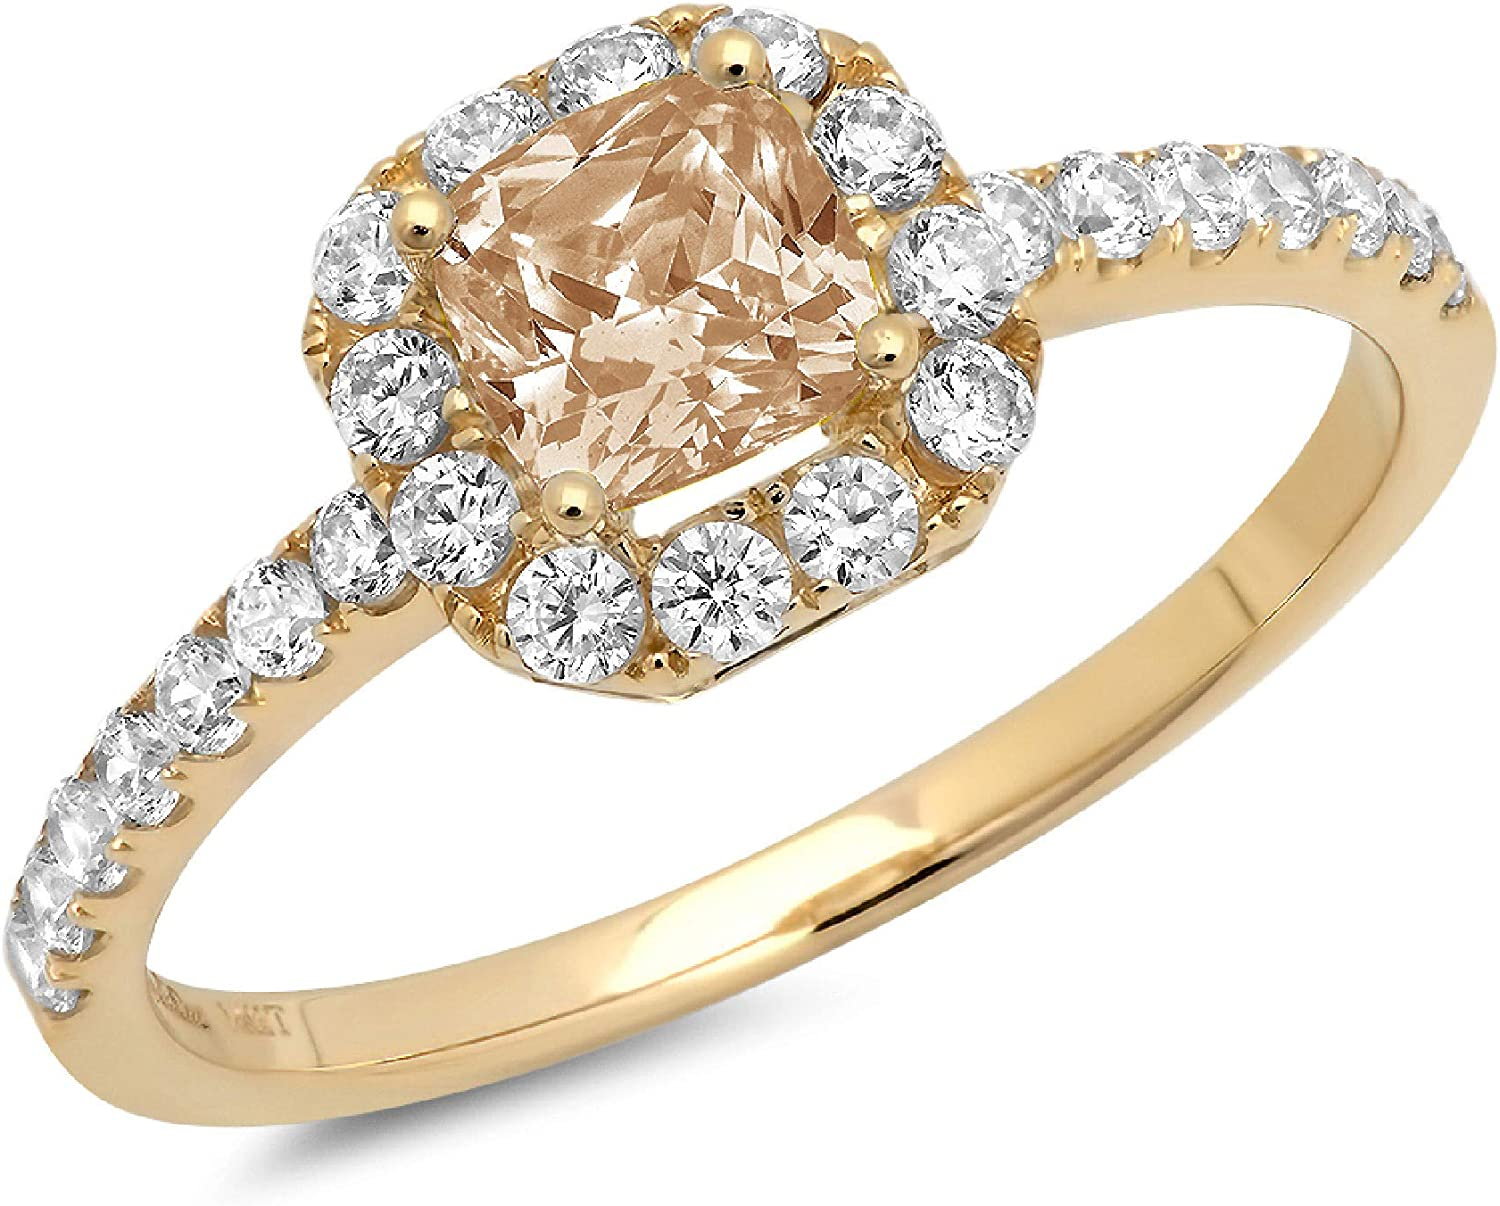 1.37ct Brilliant Princess Cut Solitaire (訳ありセール 格安) with accent Brown 70%OFFアウトレット Champa